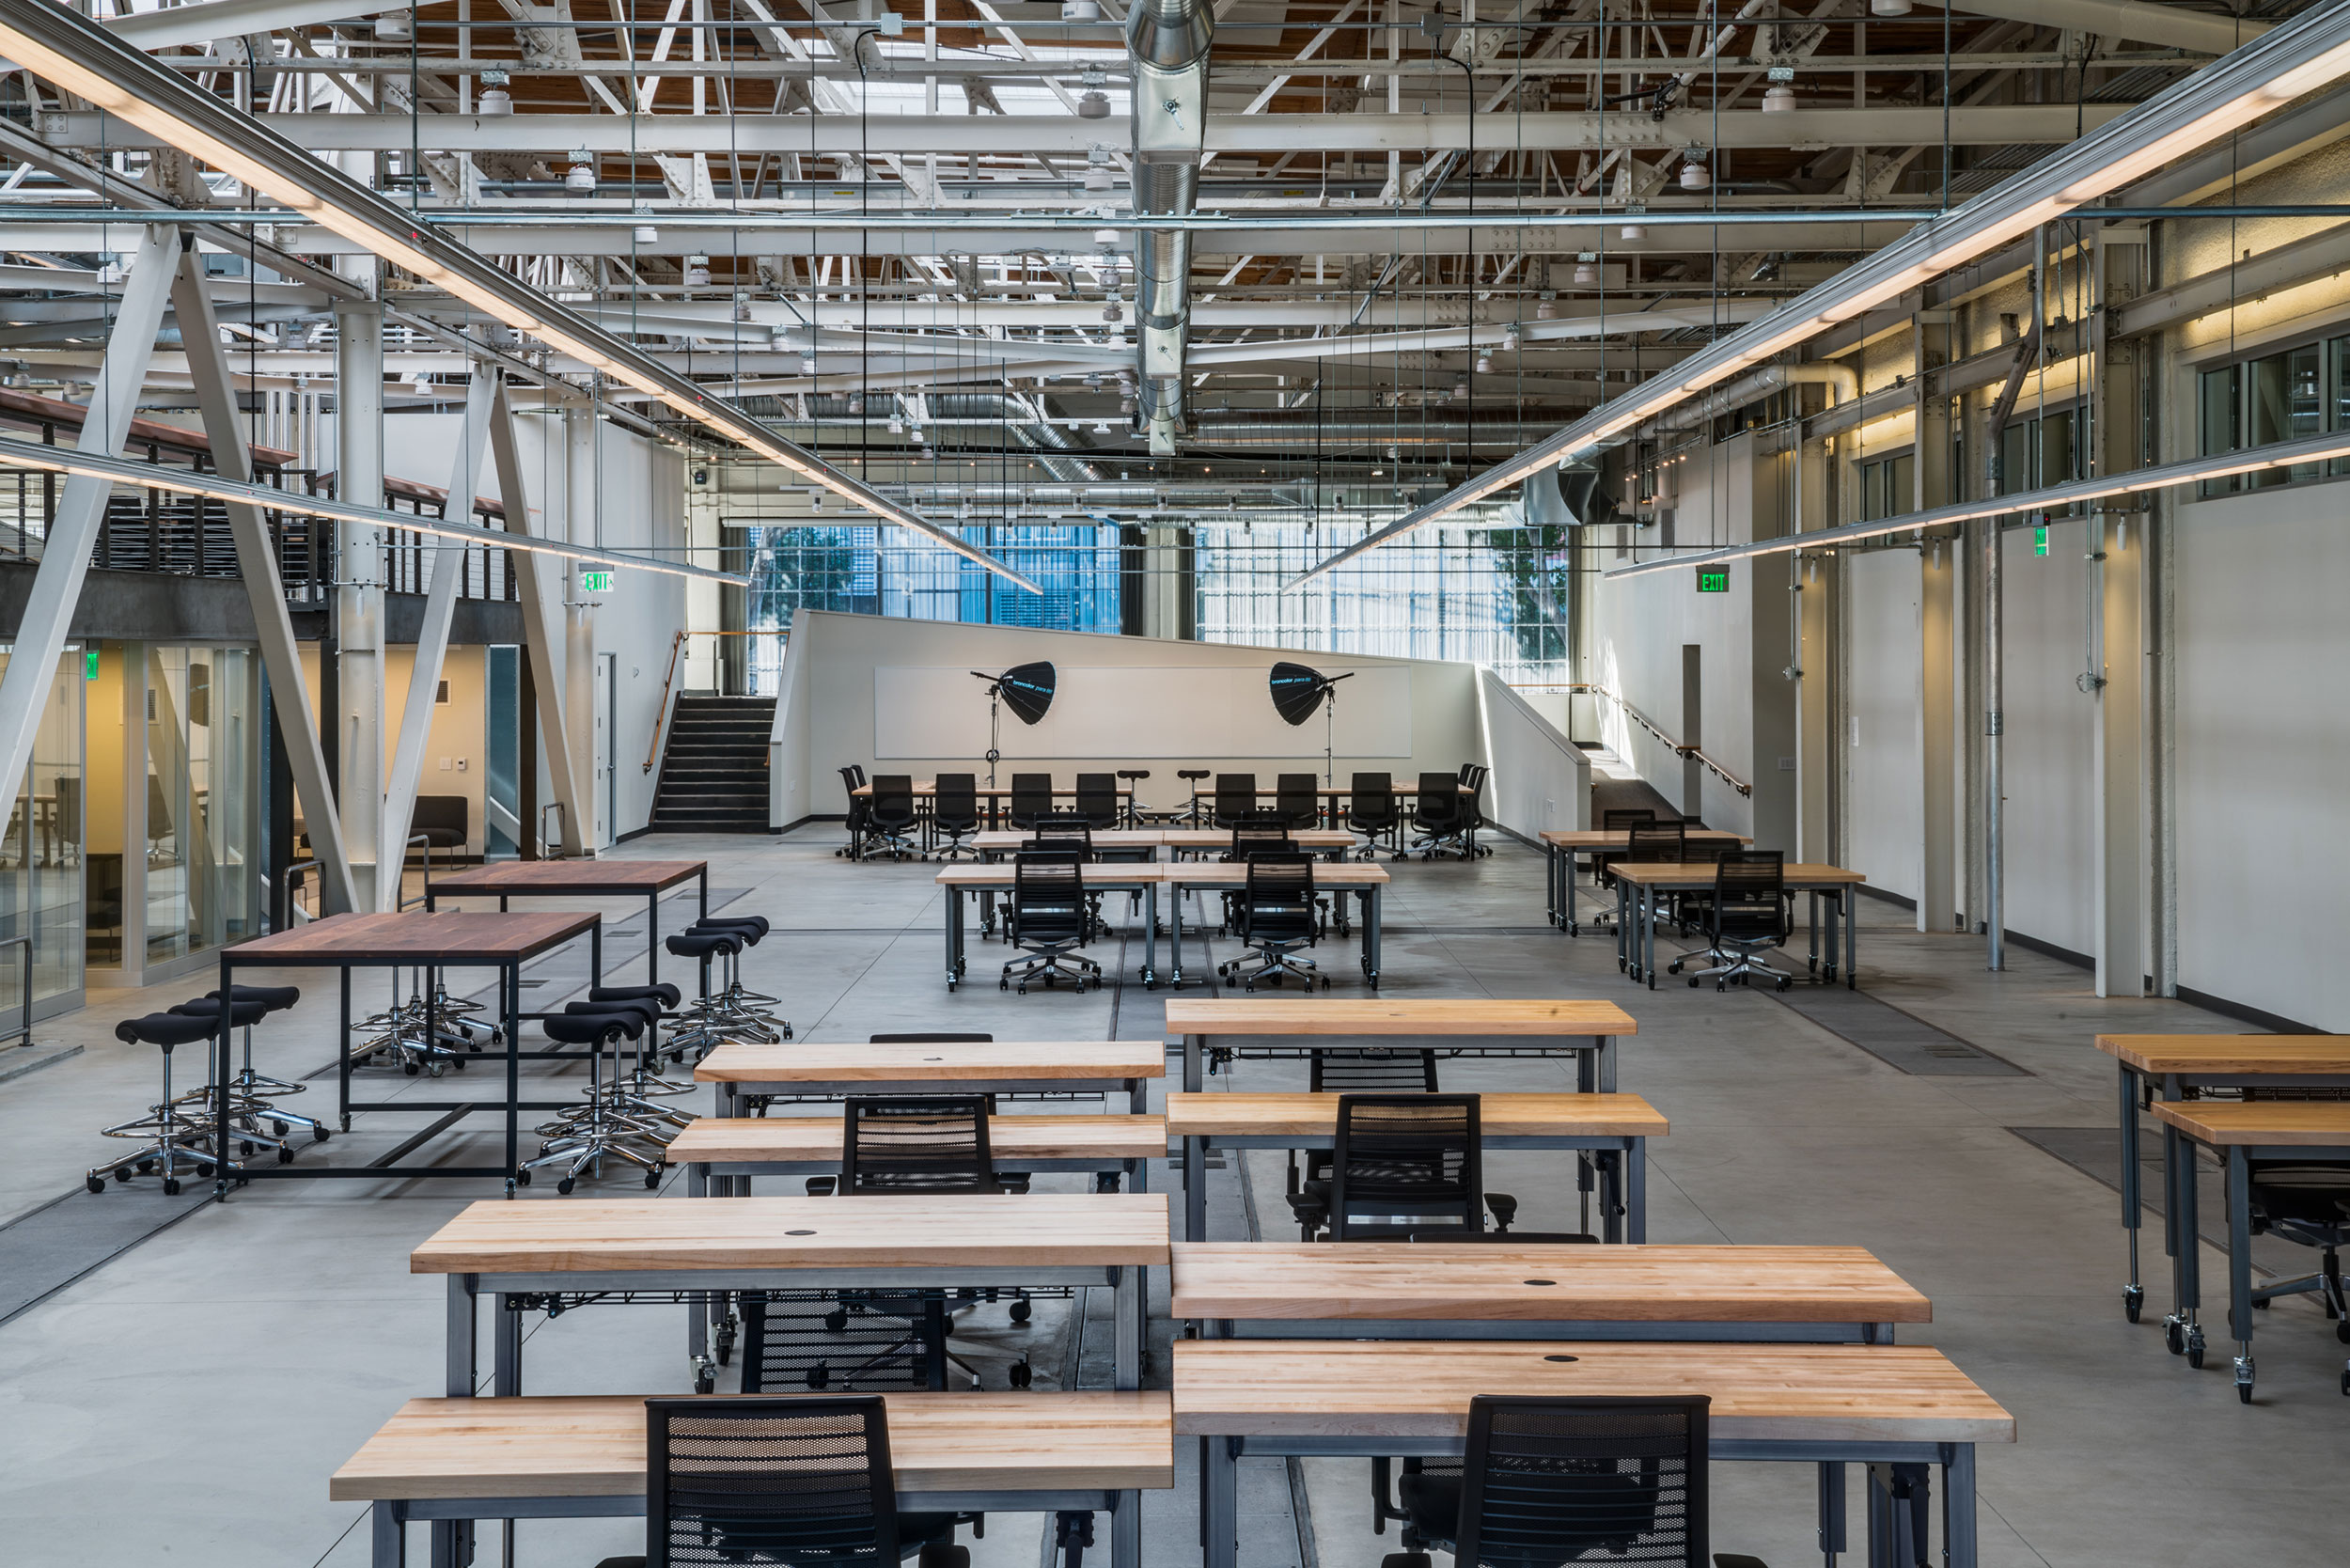 San Francisco Workplace, Office, Adaptive Reuse, Tech Company, Open Workspace, Flexible Office, Natural Light, Adjustable Desks, Industrial Design